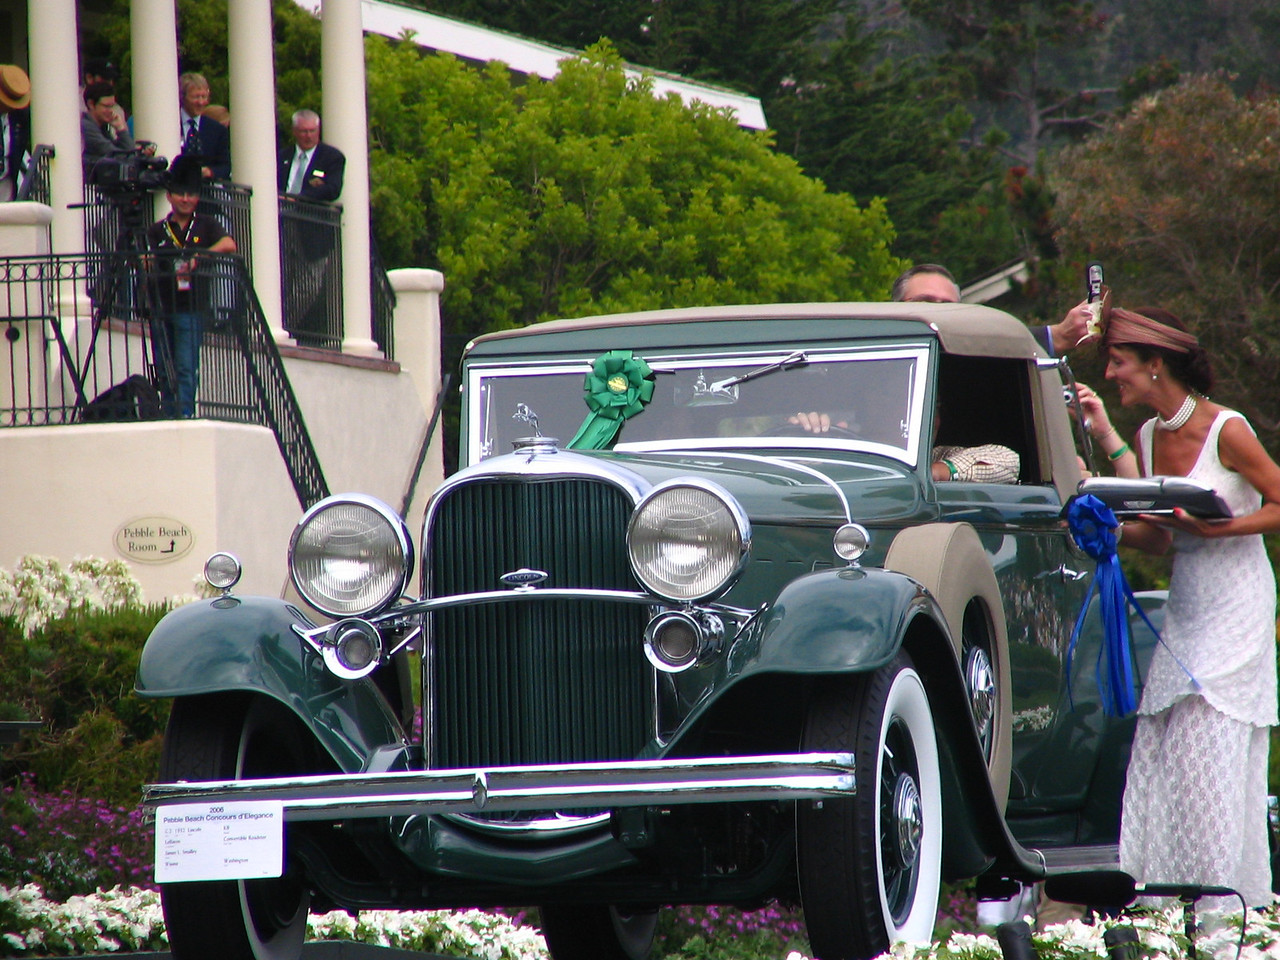 Class C-2, American Classic Open 1932-1941, Winner -- 1932 Lincoln KB LeBaron Convertible Roadster